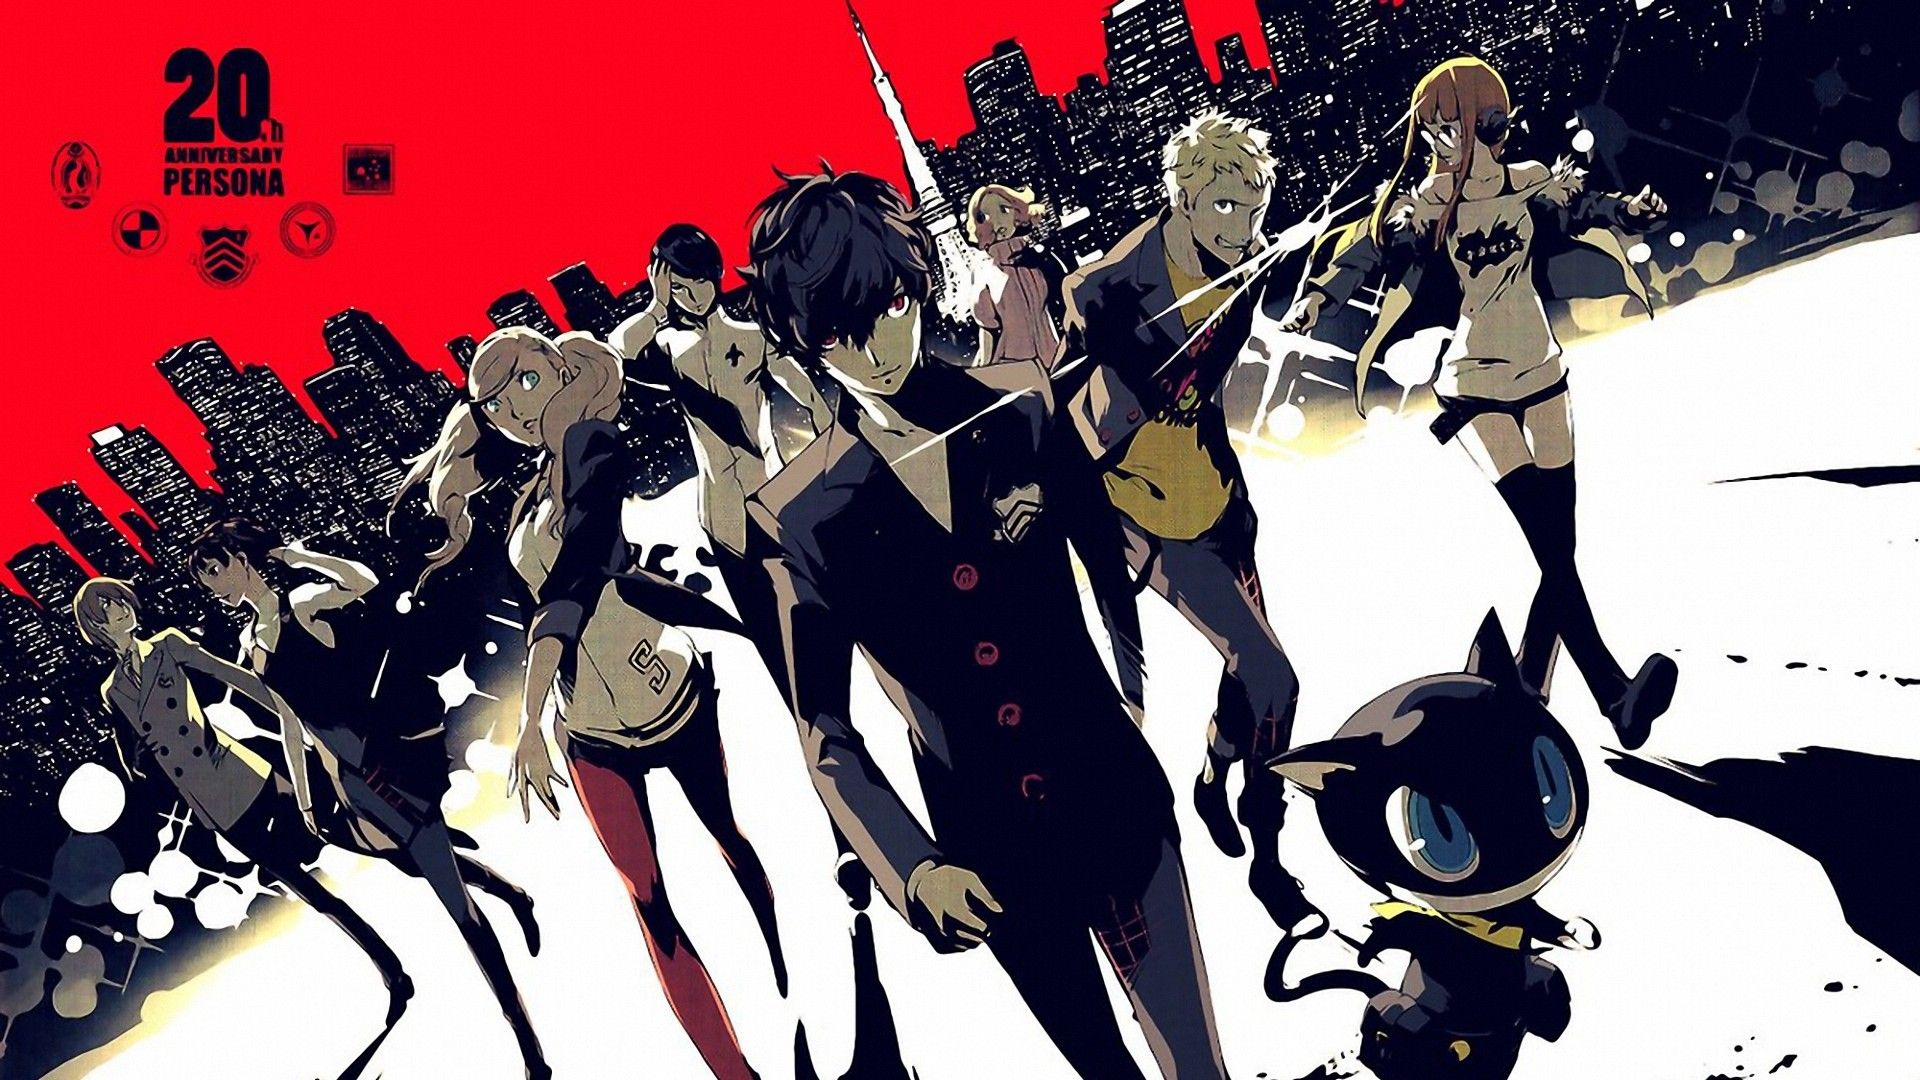 Persona 5 Wallpapers Top Free Persona 5 Backgrounds Wallpaperaccess